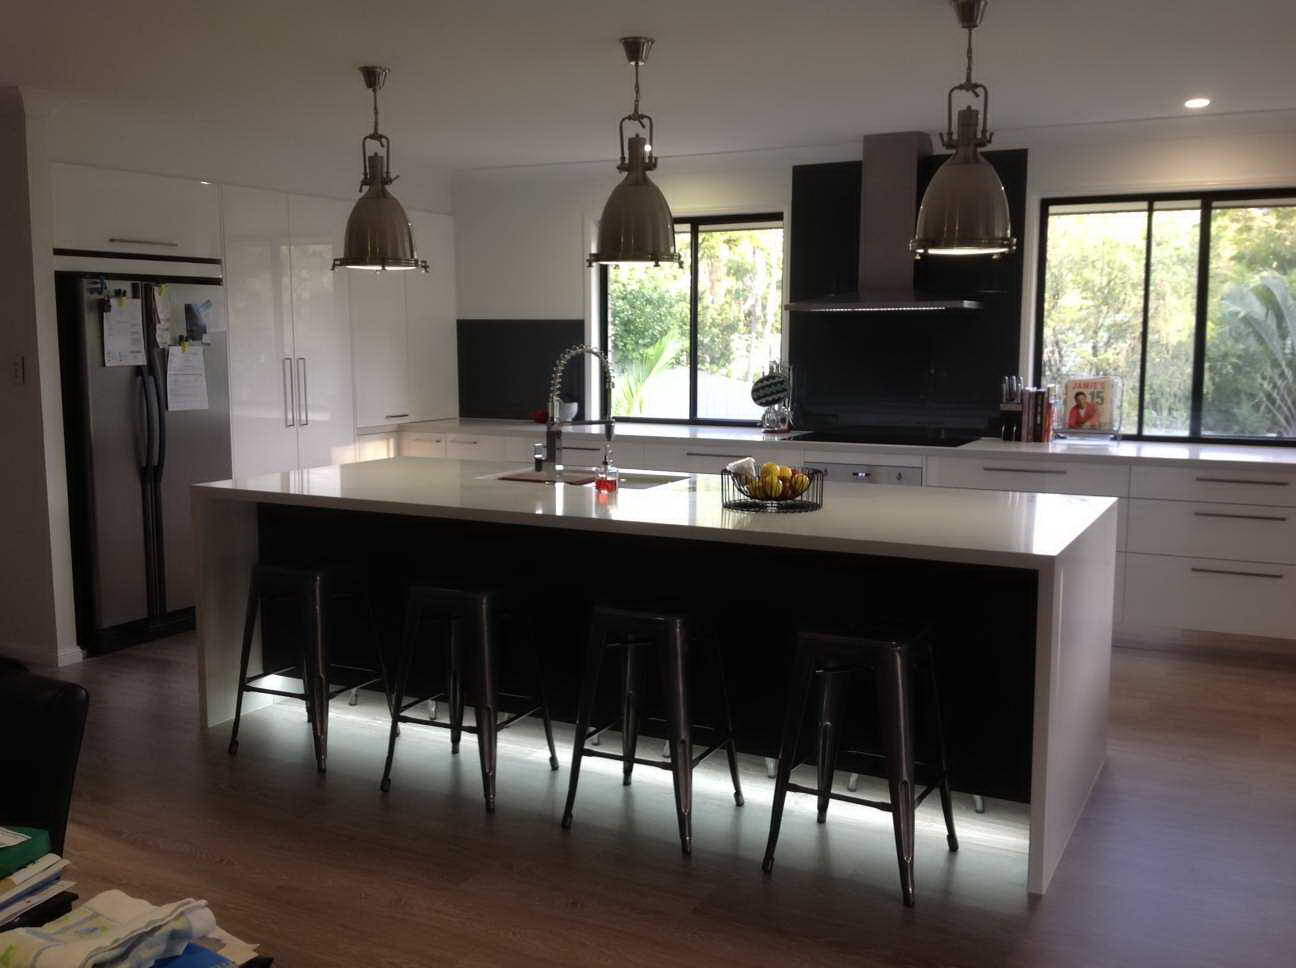 Kitchen Renovations - Gold Coast - Kitchen Brokers Queensland - Sally & John - Burleigh Heads